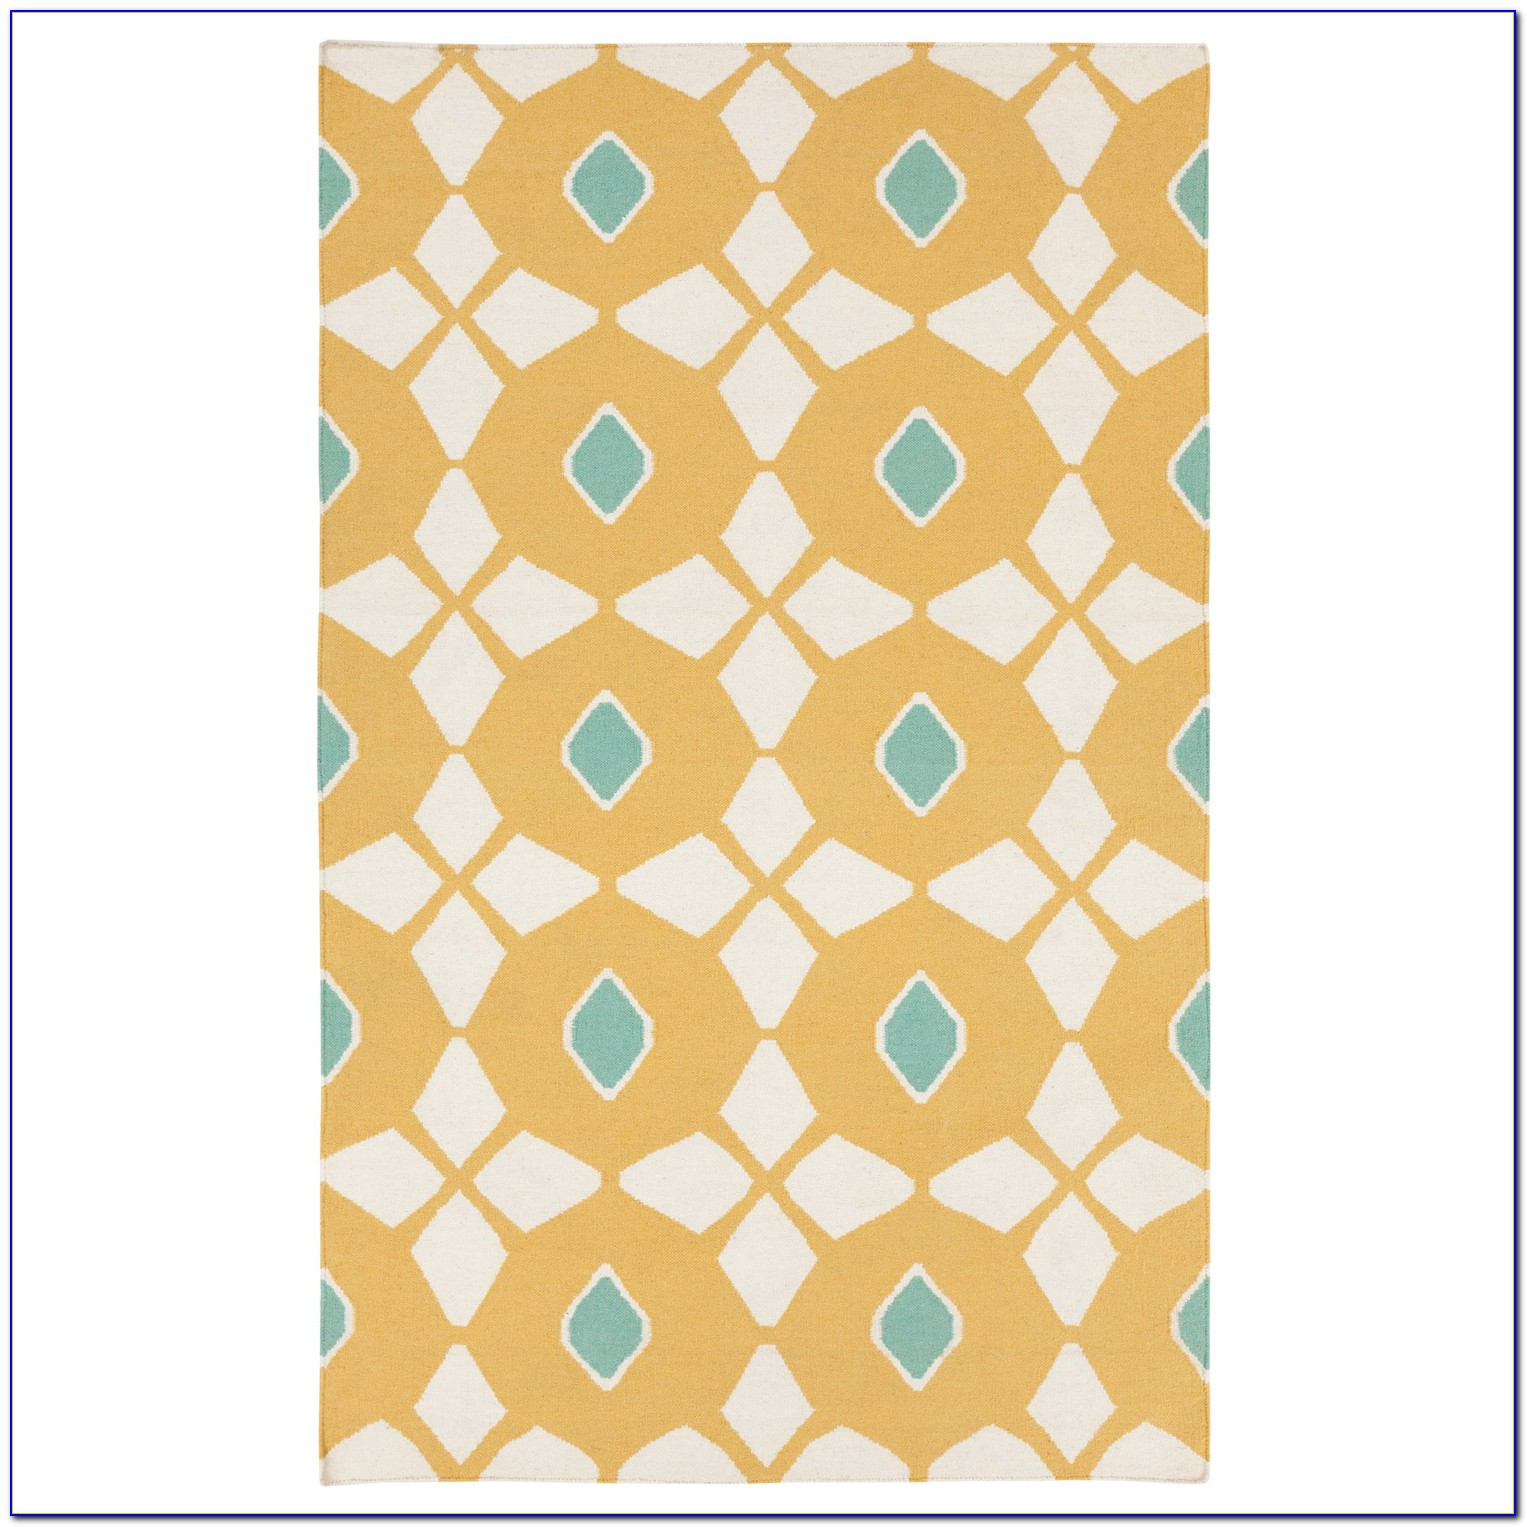 Surya frontier rug blue rugs home design ideas for Home decorators rugs blue